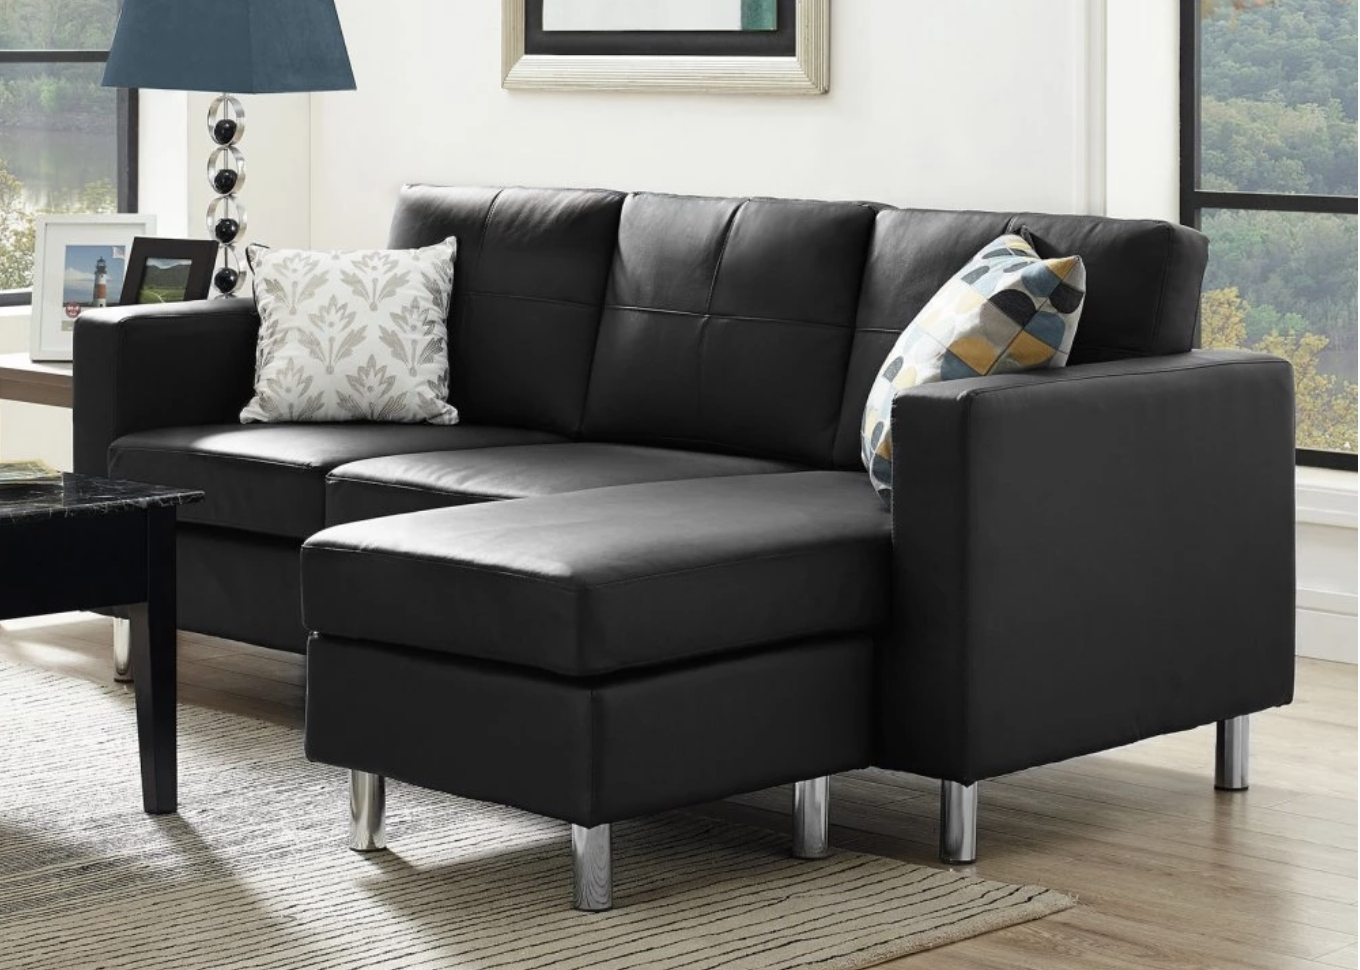 75 Modern Sectional Sofas For Small Spaces (2018) With Best And Newest Sectional Sofas For Small Rooms (View 2 of 15)